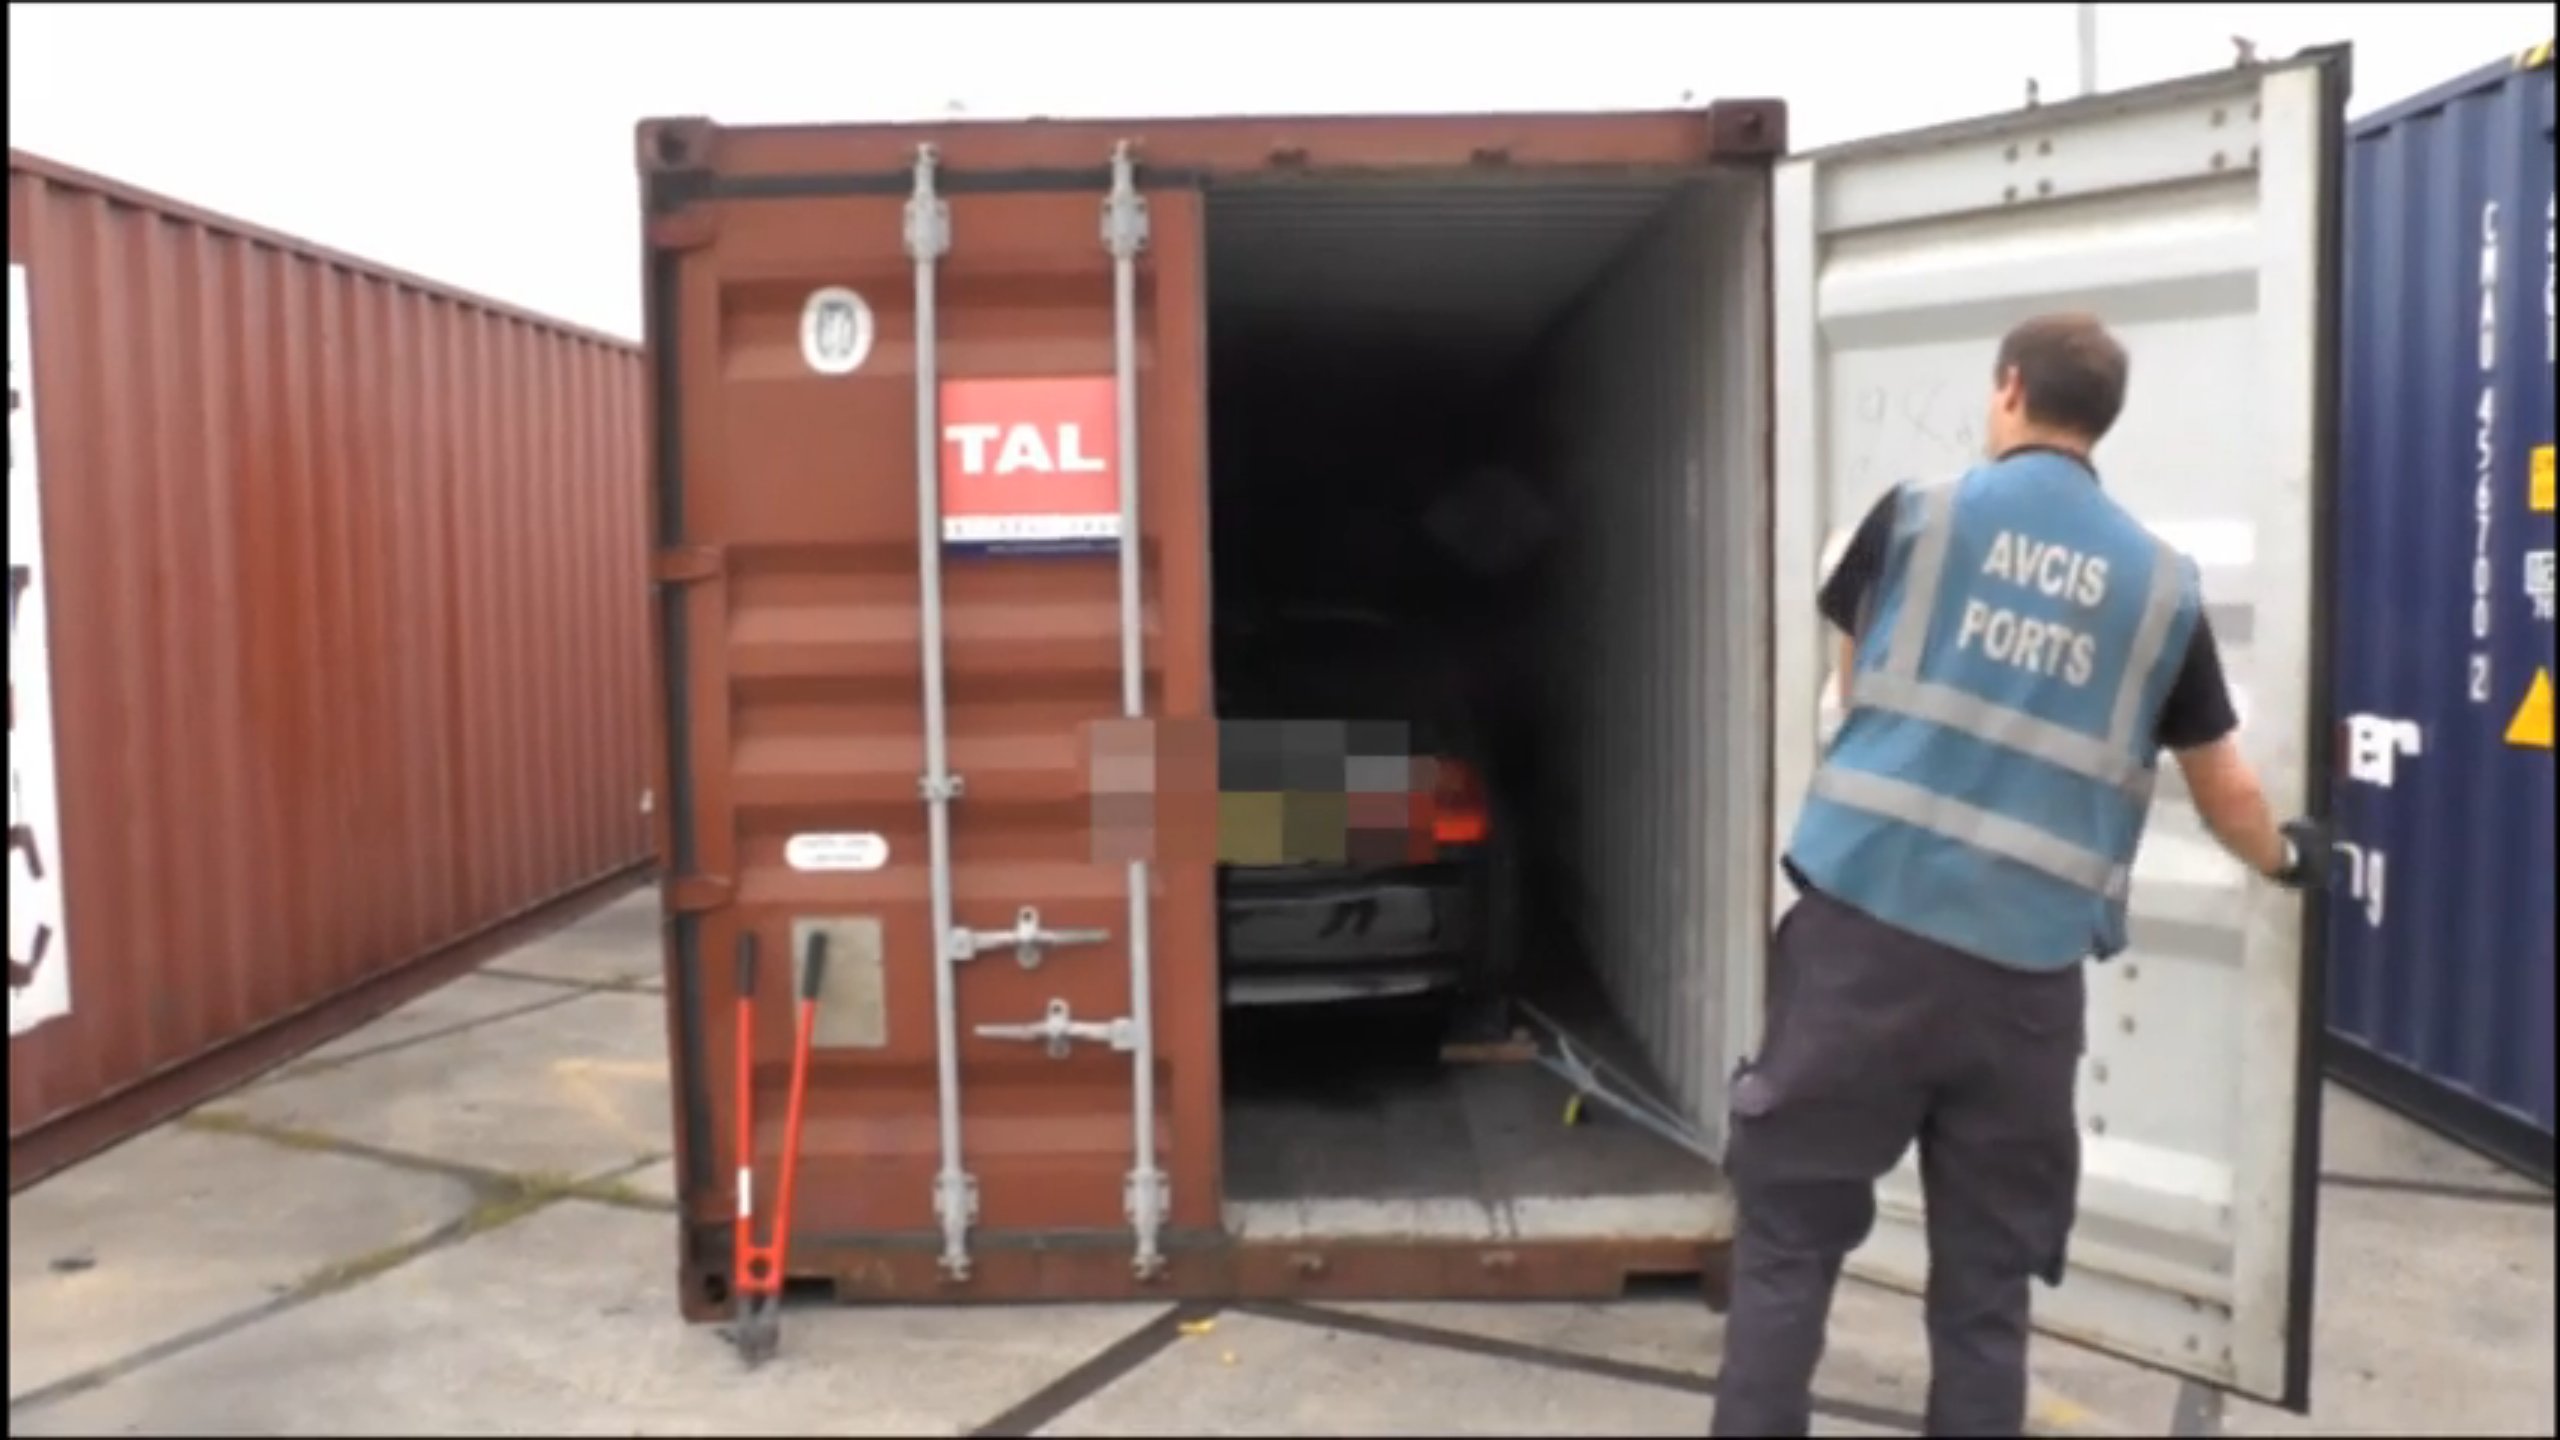 Officers show huge crates carrying the vehicles